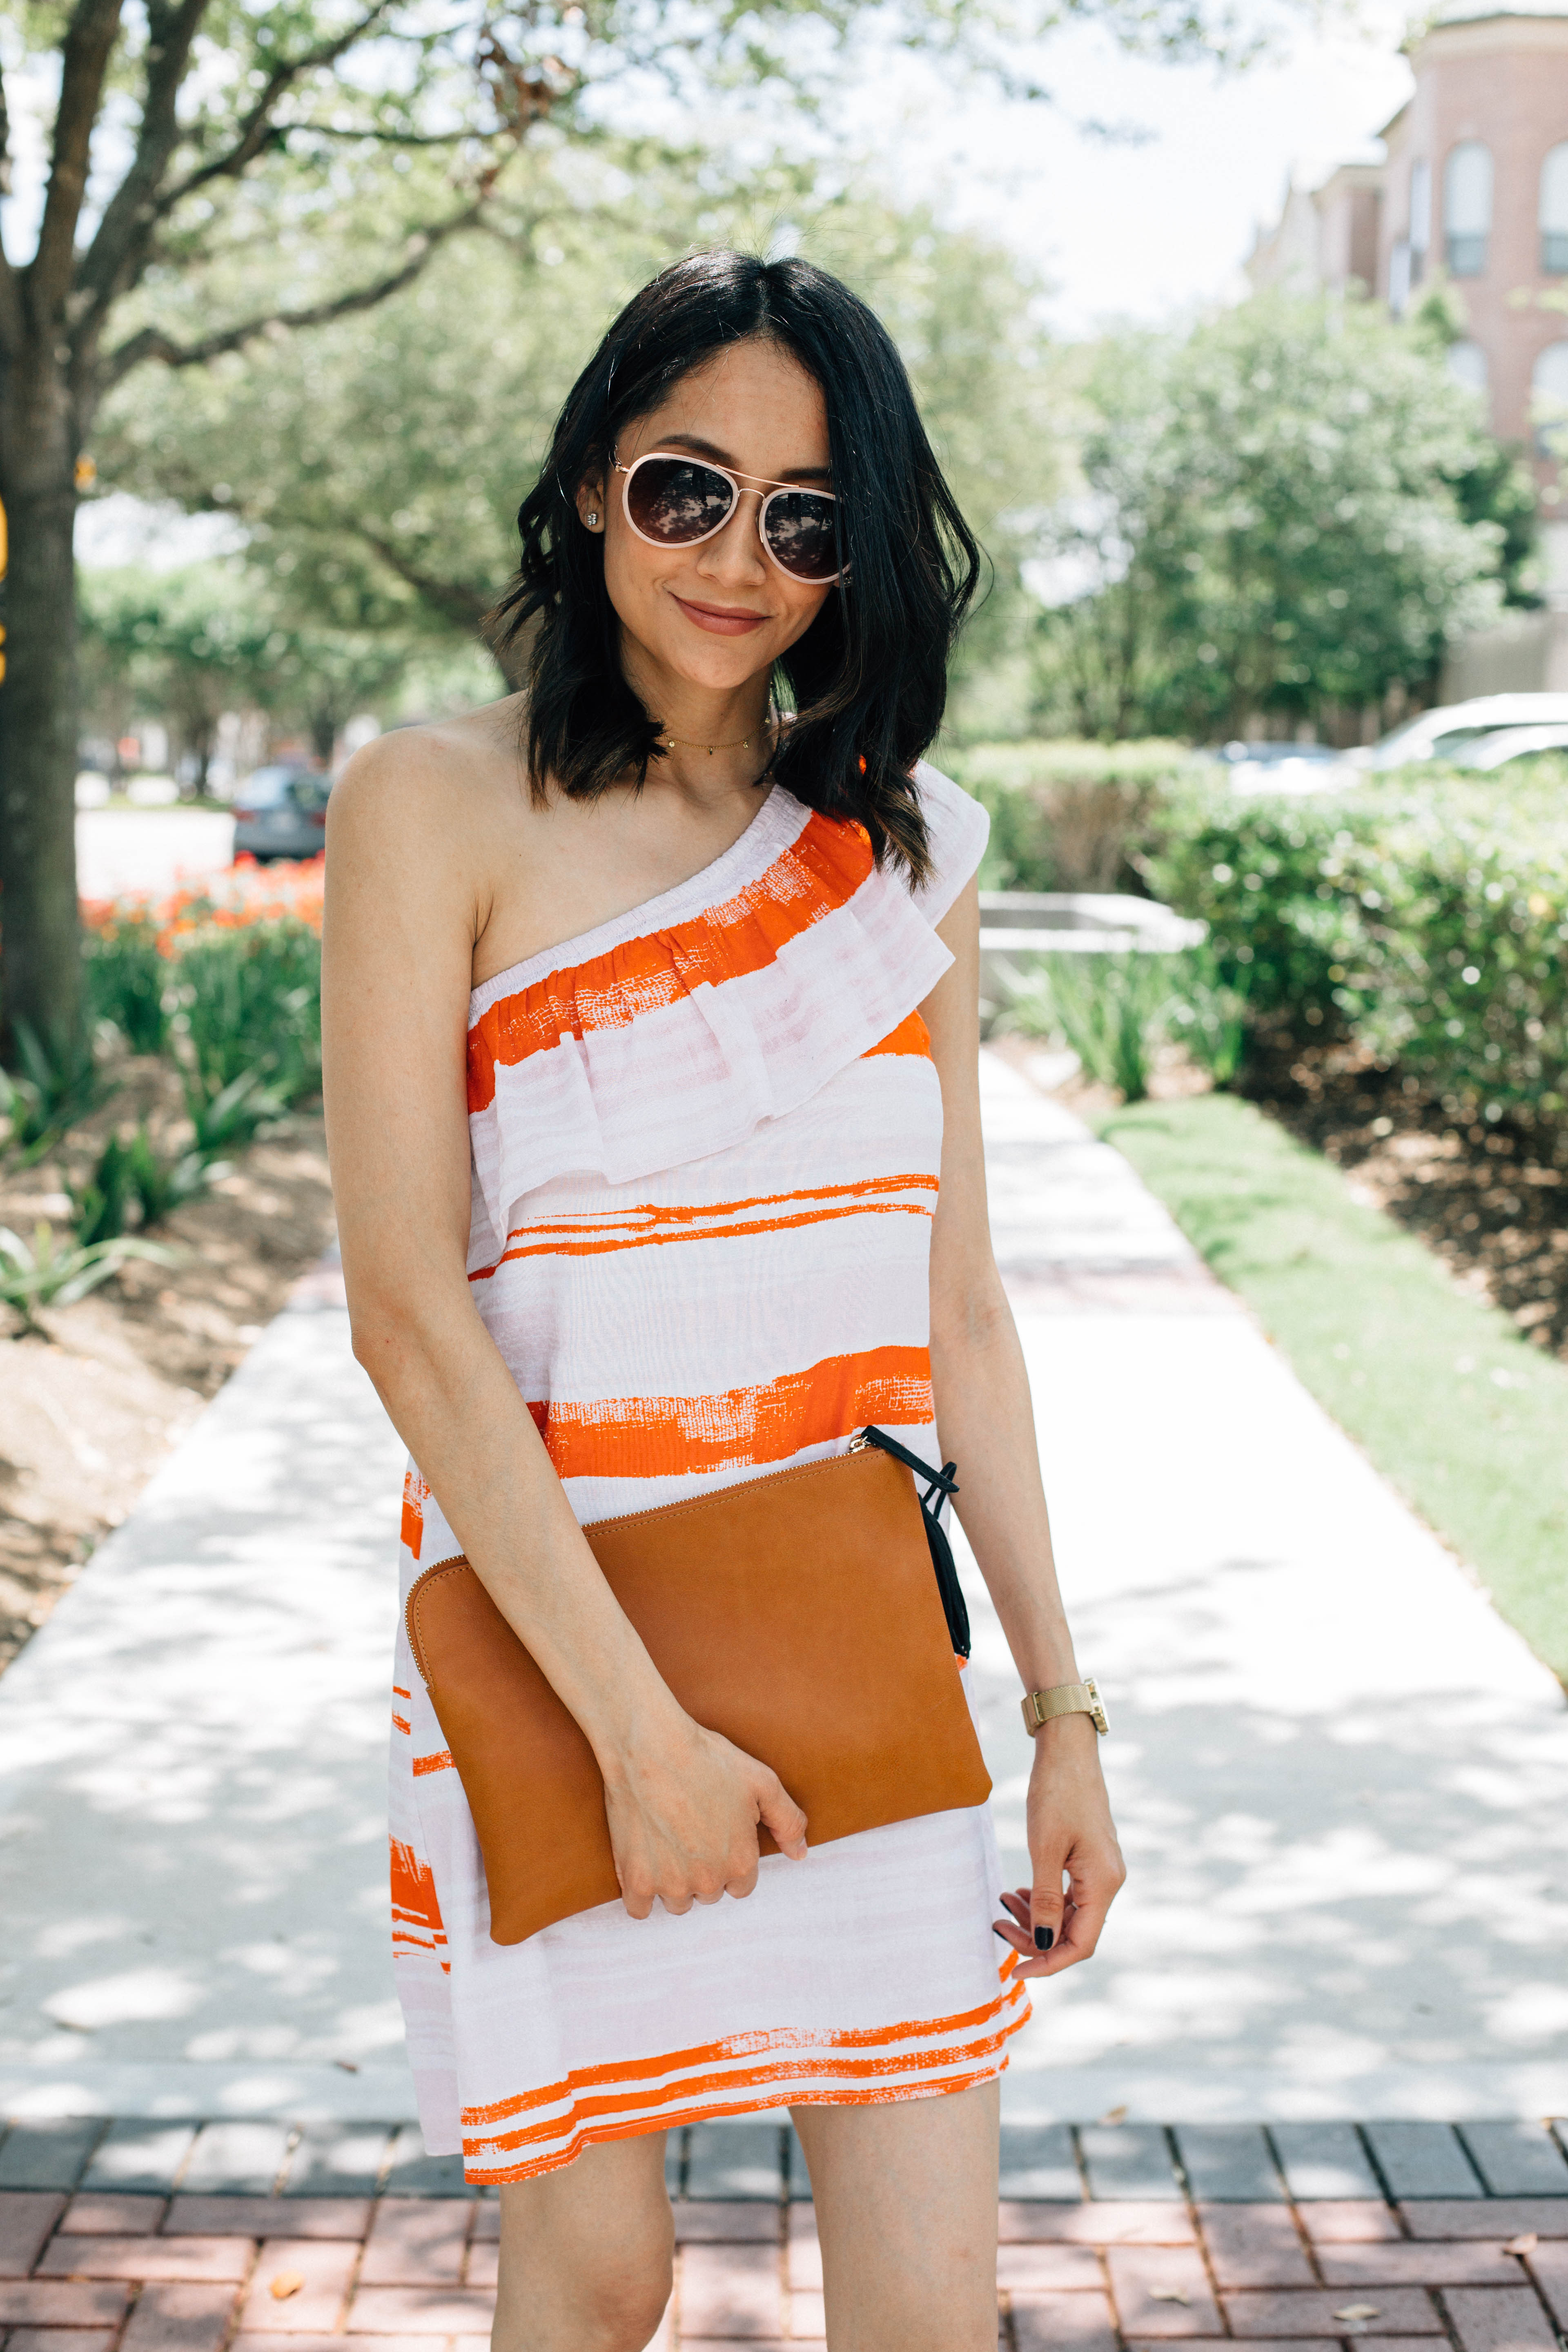 An effortless way to look chic for brunch | One shoulder dress